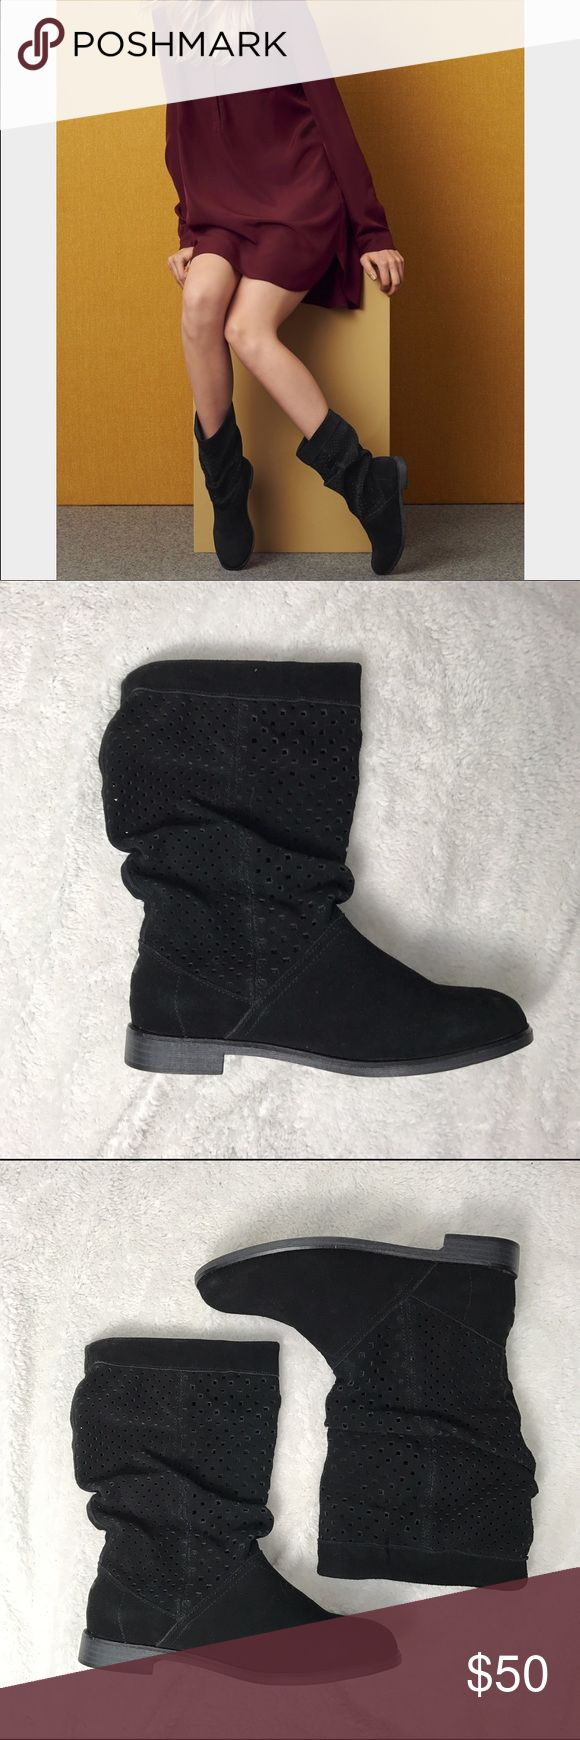 """TOMS Serra Boots NEW and NEVER WORN TOMS 'Serra' Boots in size 6.5.  Details A perforated shaft and a slouch silhouette lend casual, laid-back appeal to a round-toe boot from TOMS set on a short, stacked heel. If boot is difficult to slip on initially, place a plastic bag over your sock for easier entry. Tear away the bag once the boot is on your foot.  - 1"""" heel (size 8.5) - 10"""" boot shaft; 14"""" calf circumference - Pull-on style - Suede upper/textile lining/textile and rubber sole TOMS…"""